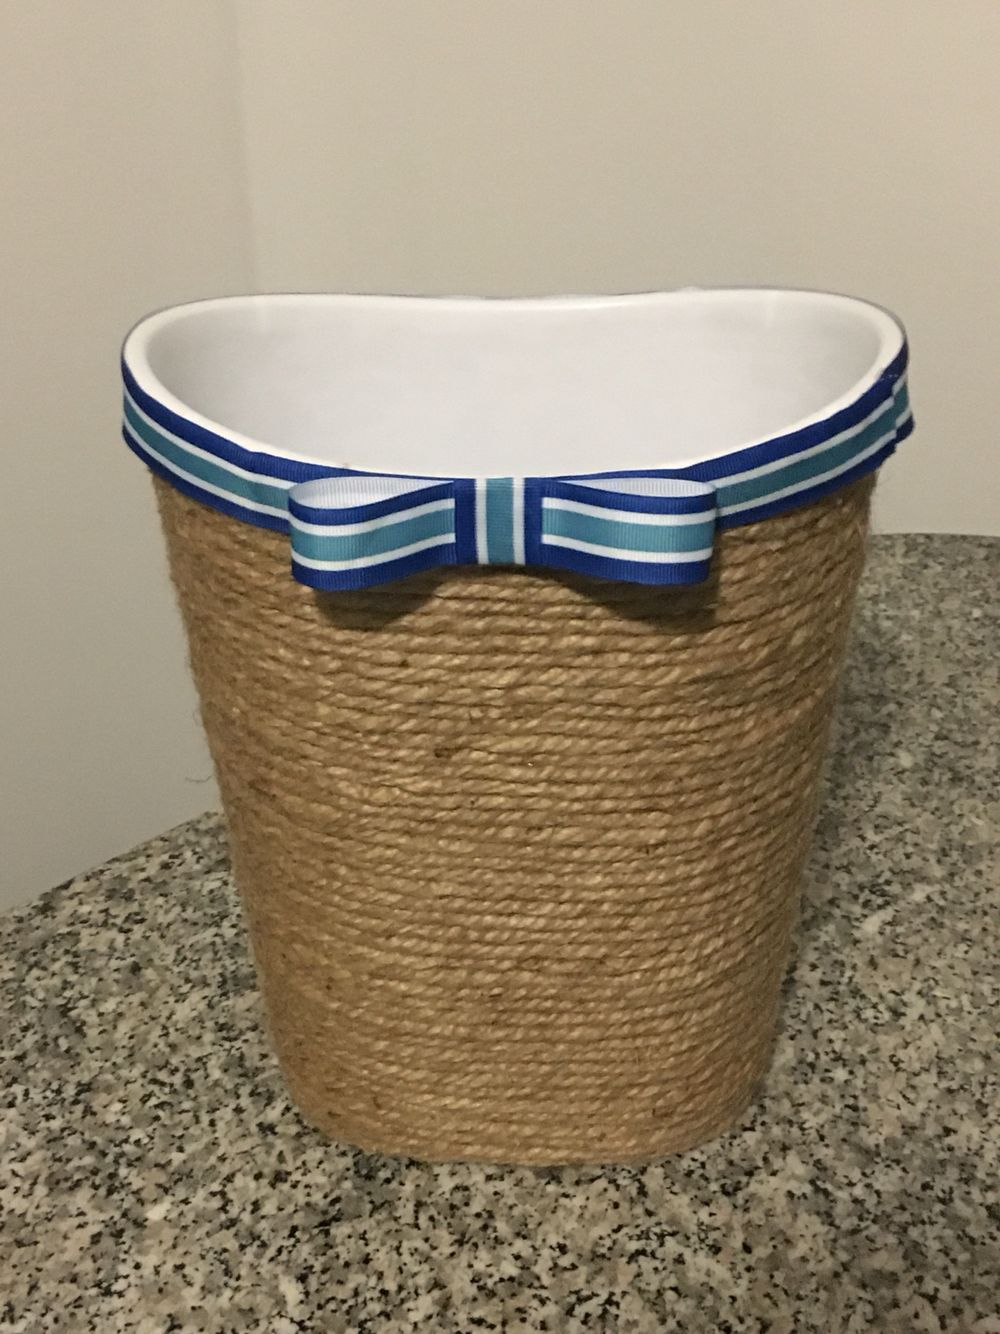 Nautical Baby Nursery Trash Can Using Dollar Hot Glued The Rope On To And Added A Decorative Ribbon Top Edge